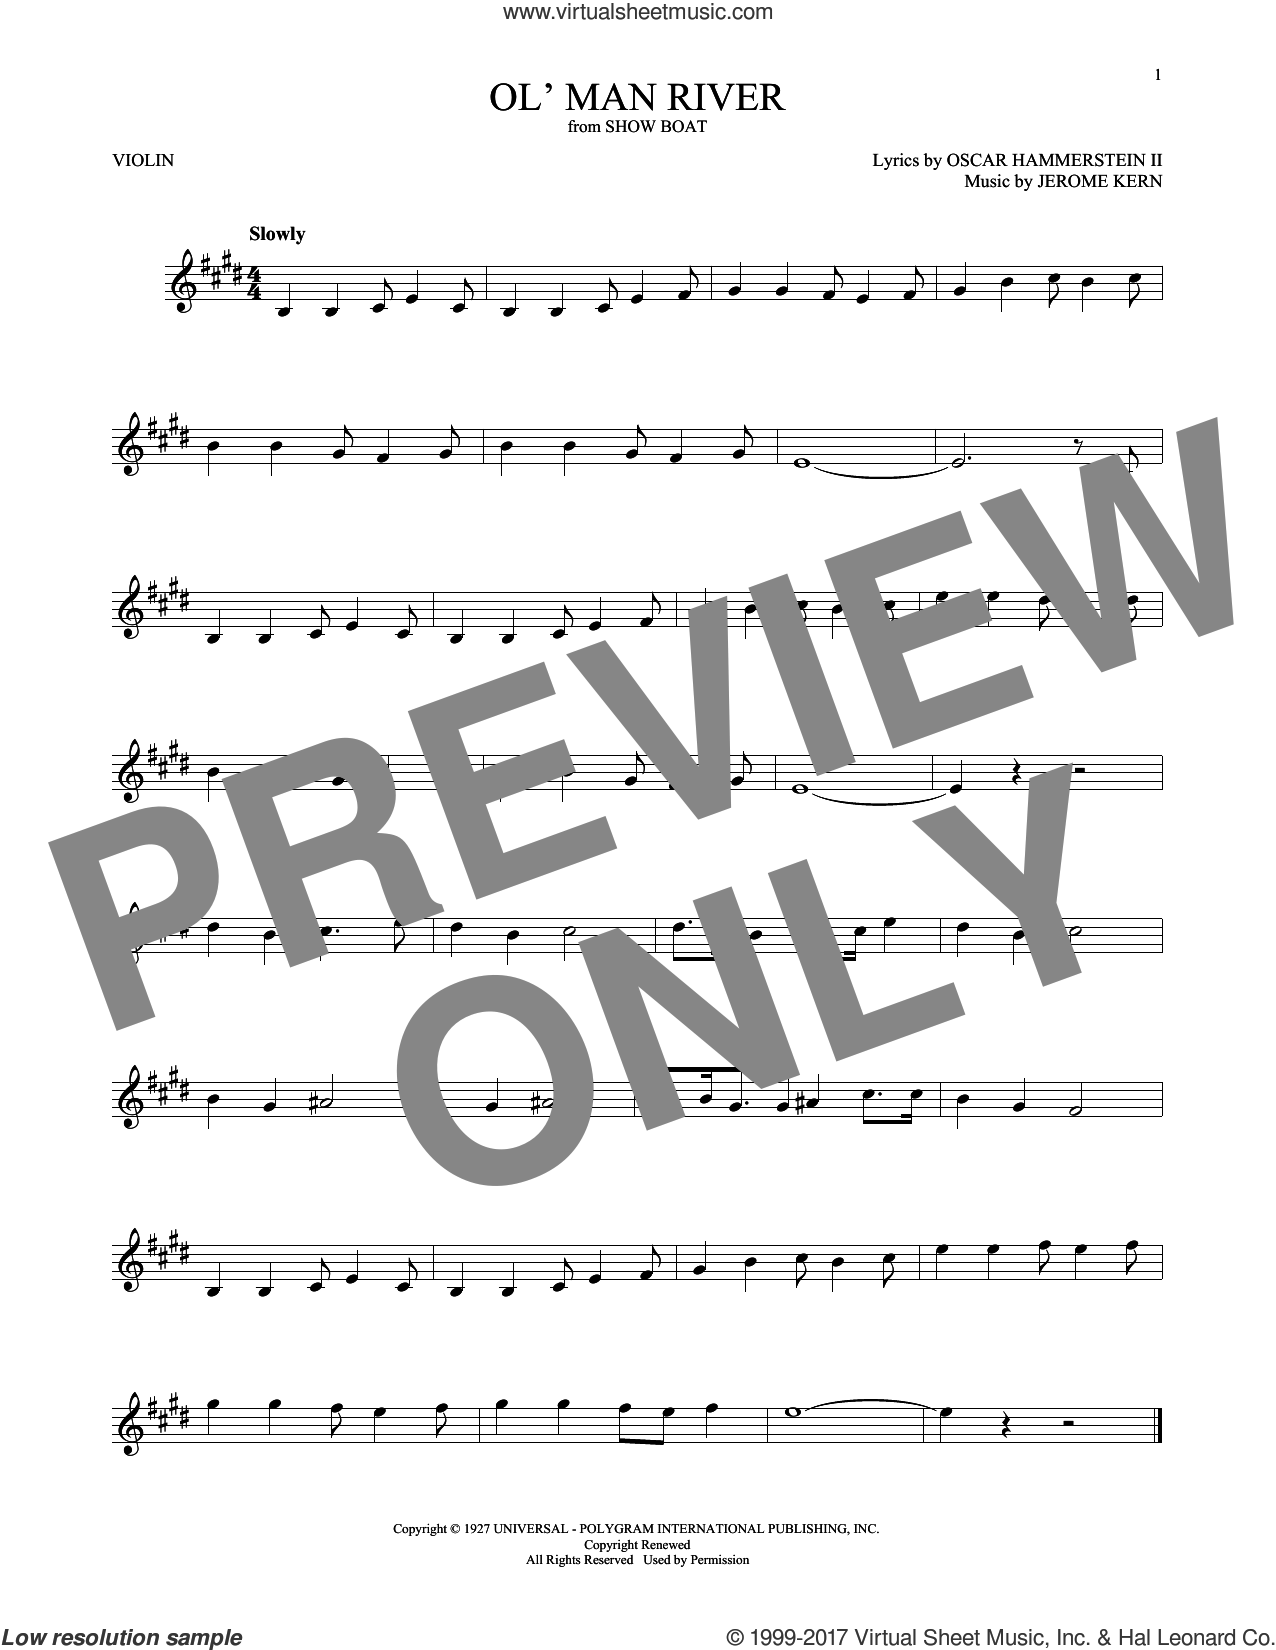 Ol' Man River sheet music for violin solo by Oscar II Hammerstein and Jerome Kern, intermediate skill level